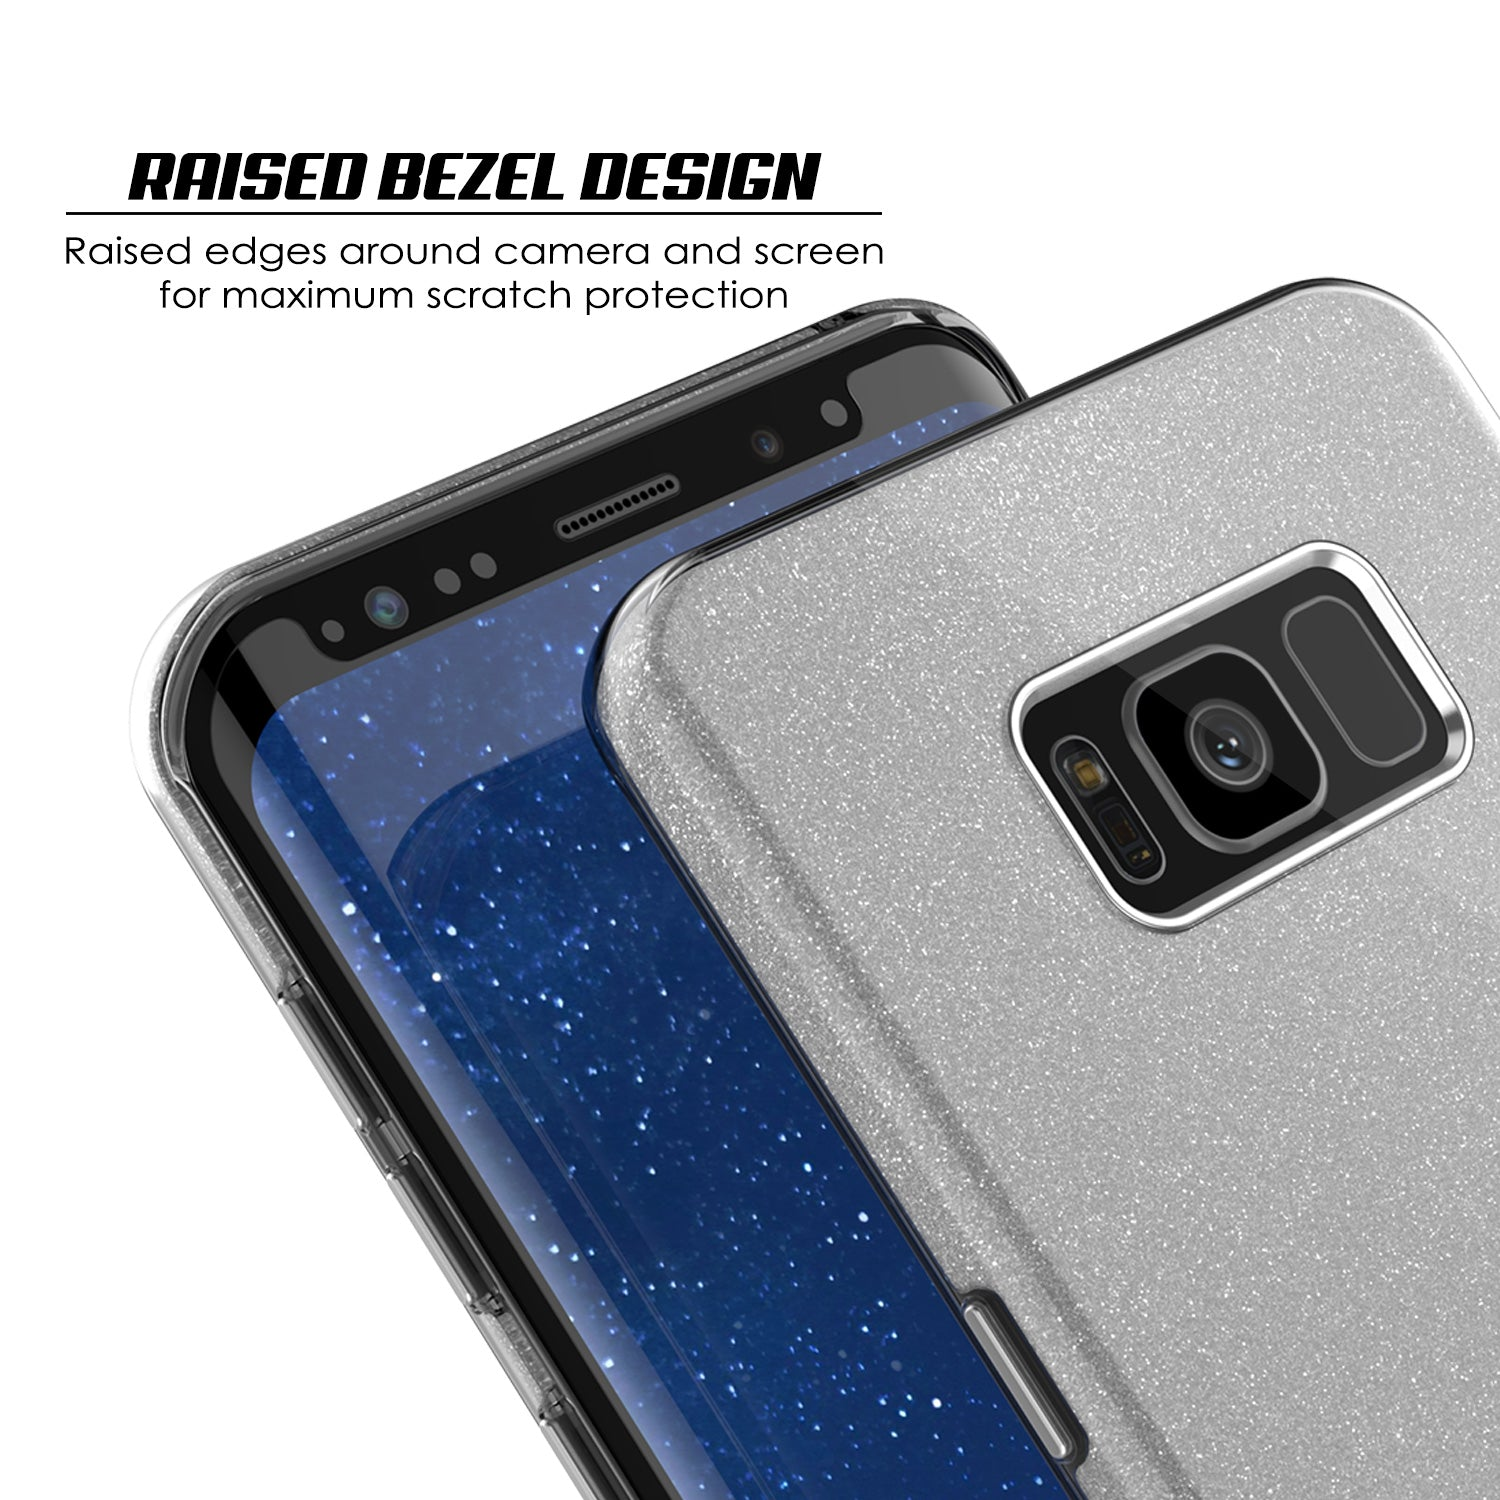 Galaxy S8 Plus Case, Punkcase Galactic 2.0 Series Ultra Slim Protective Armor TPU Cover [Silver]